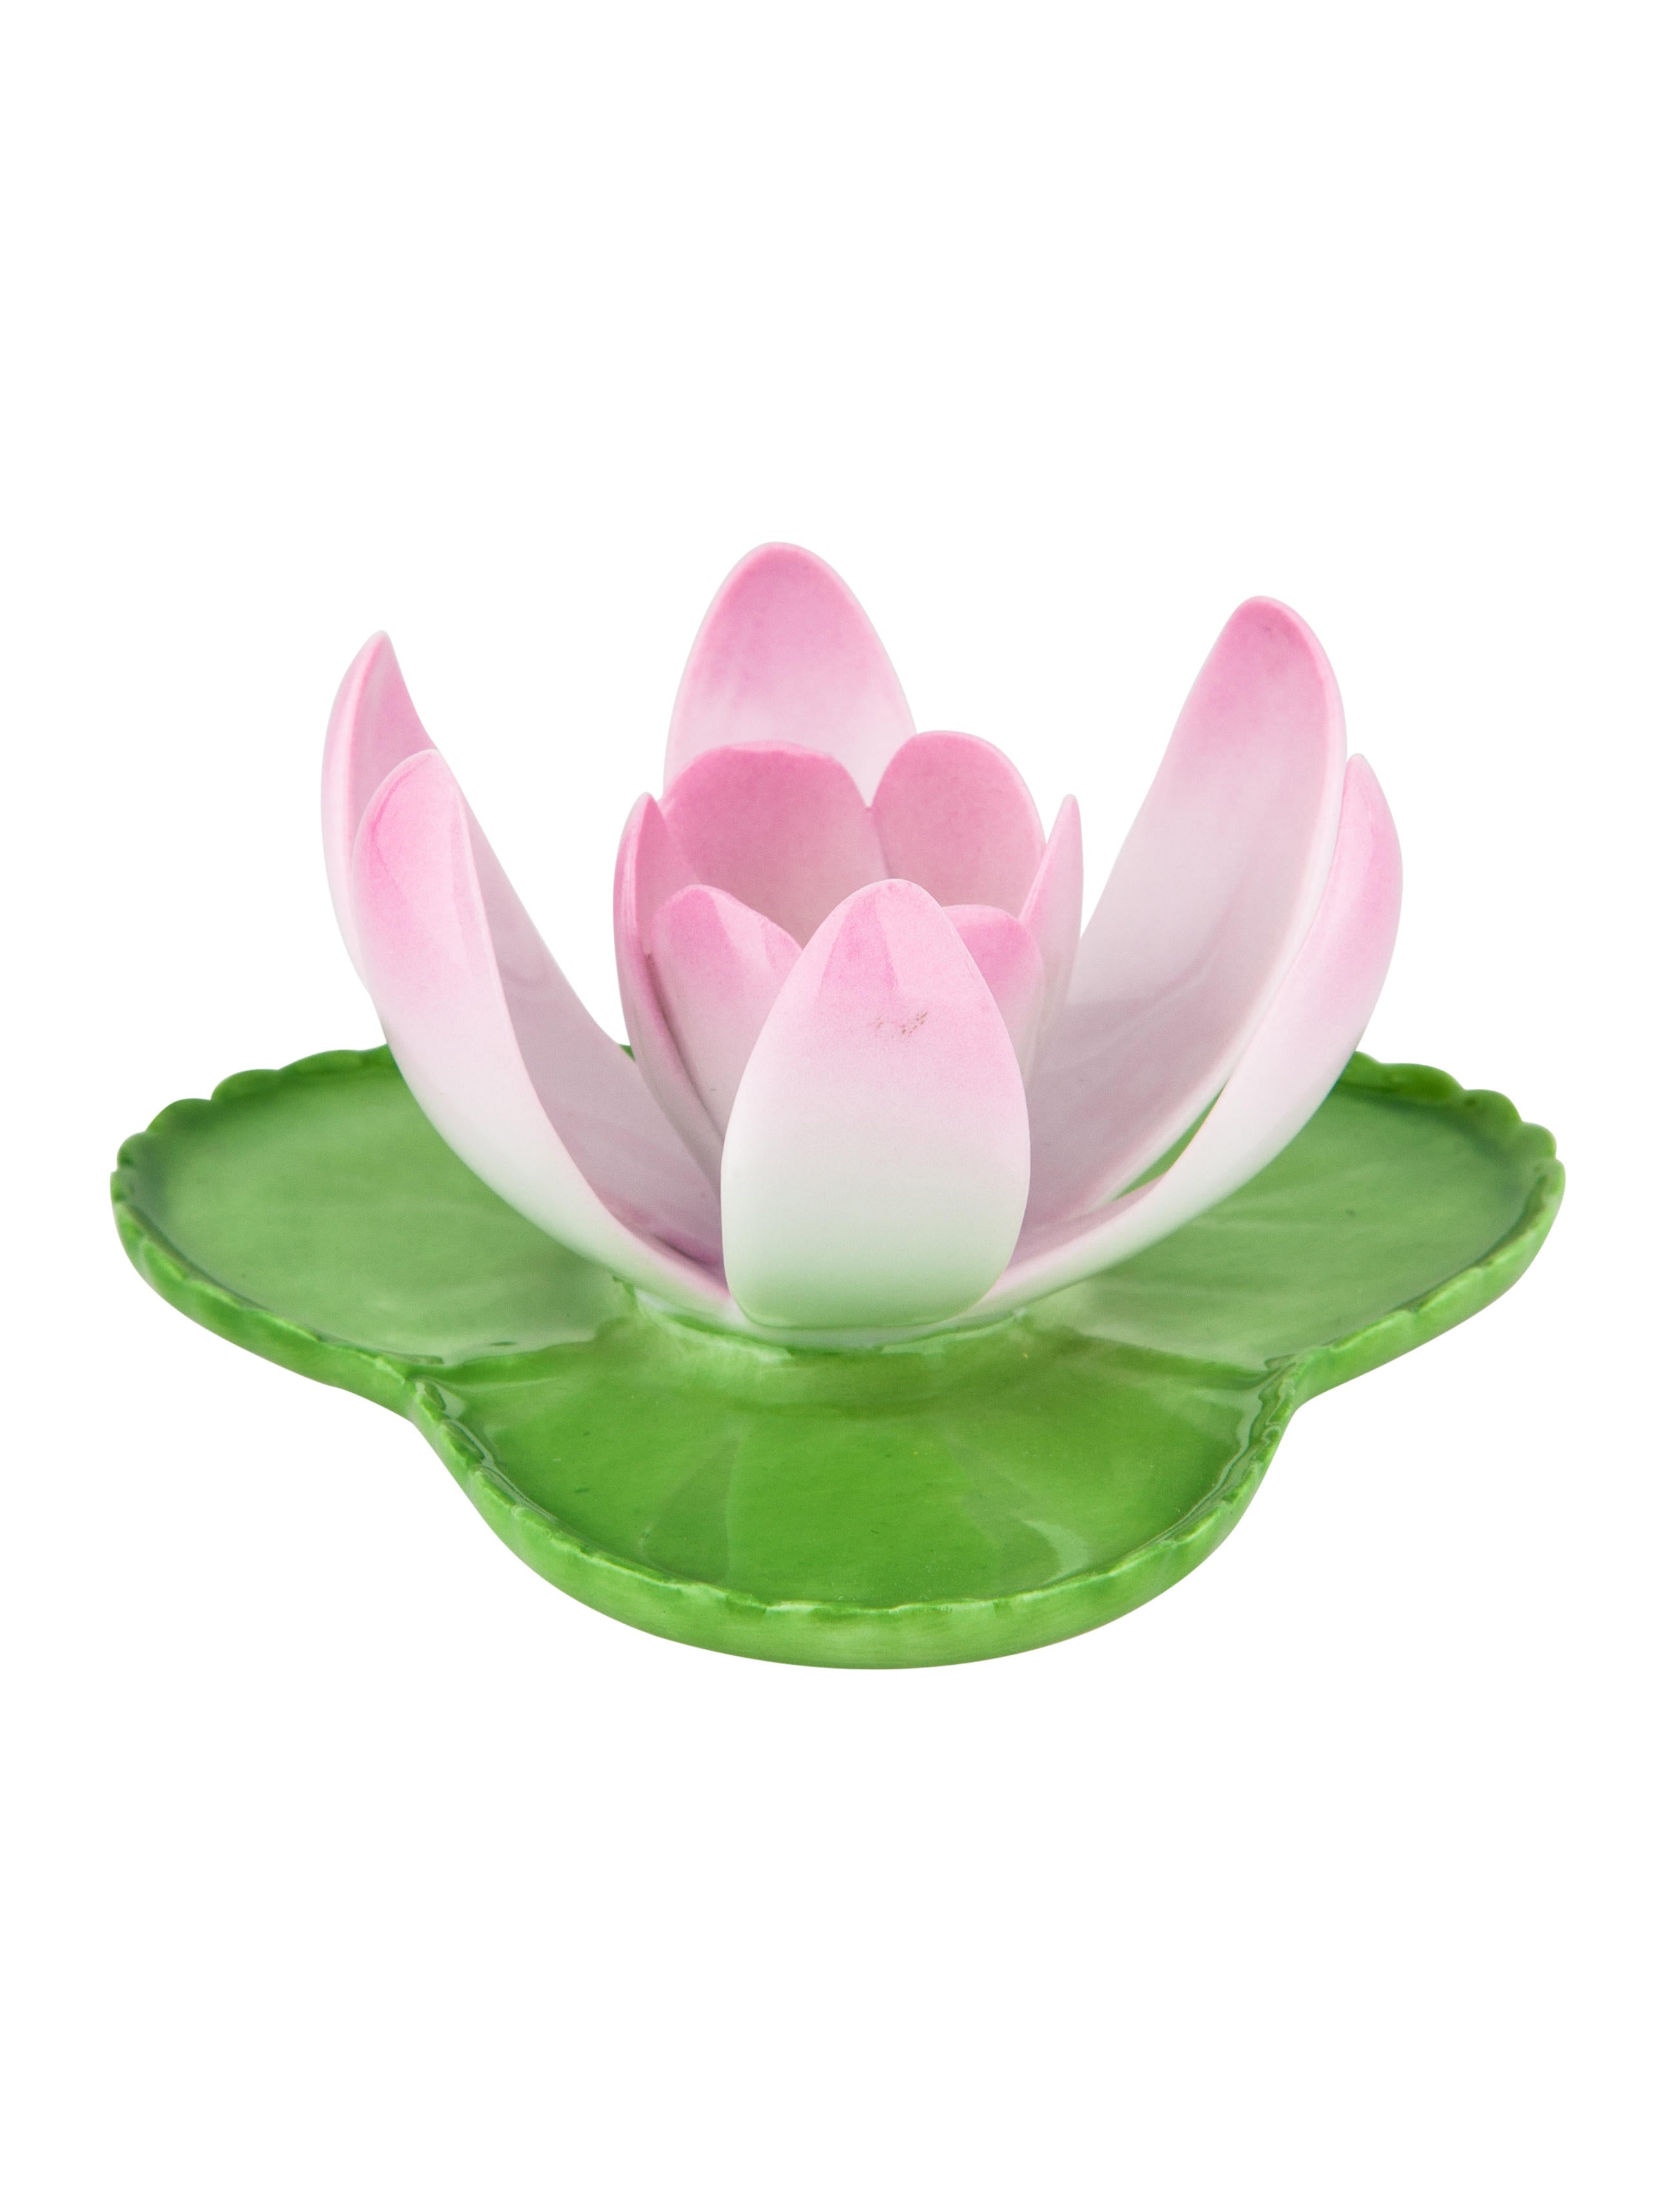 Herend Set Of 4 Porcelain Flowers On Lily Pads Decor And